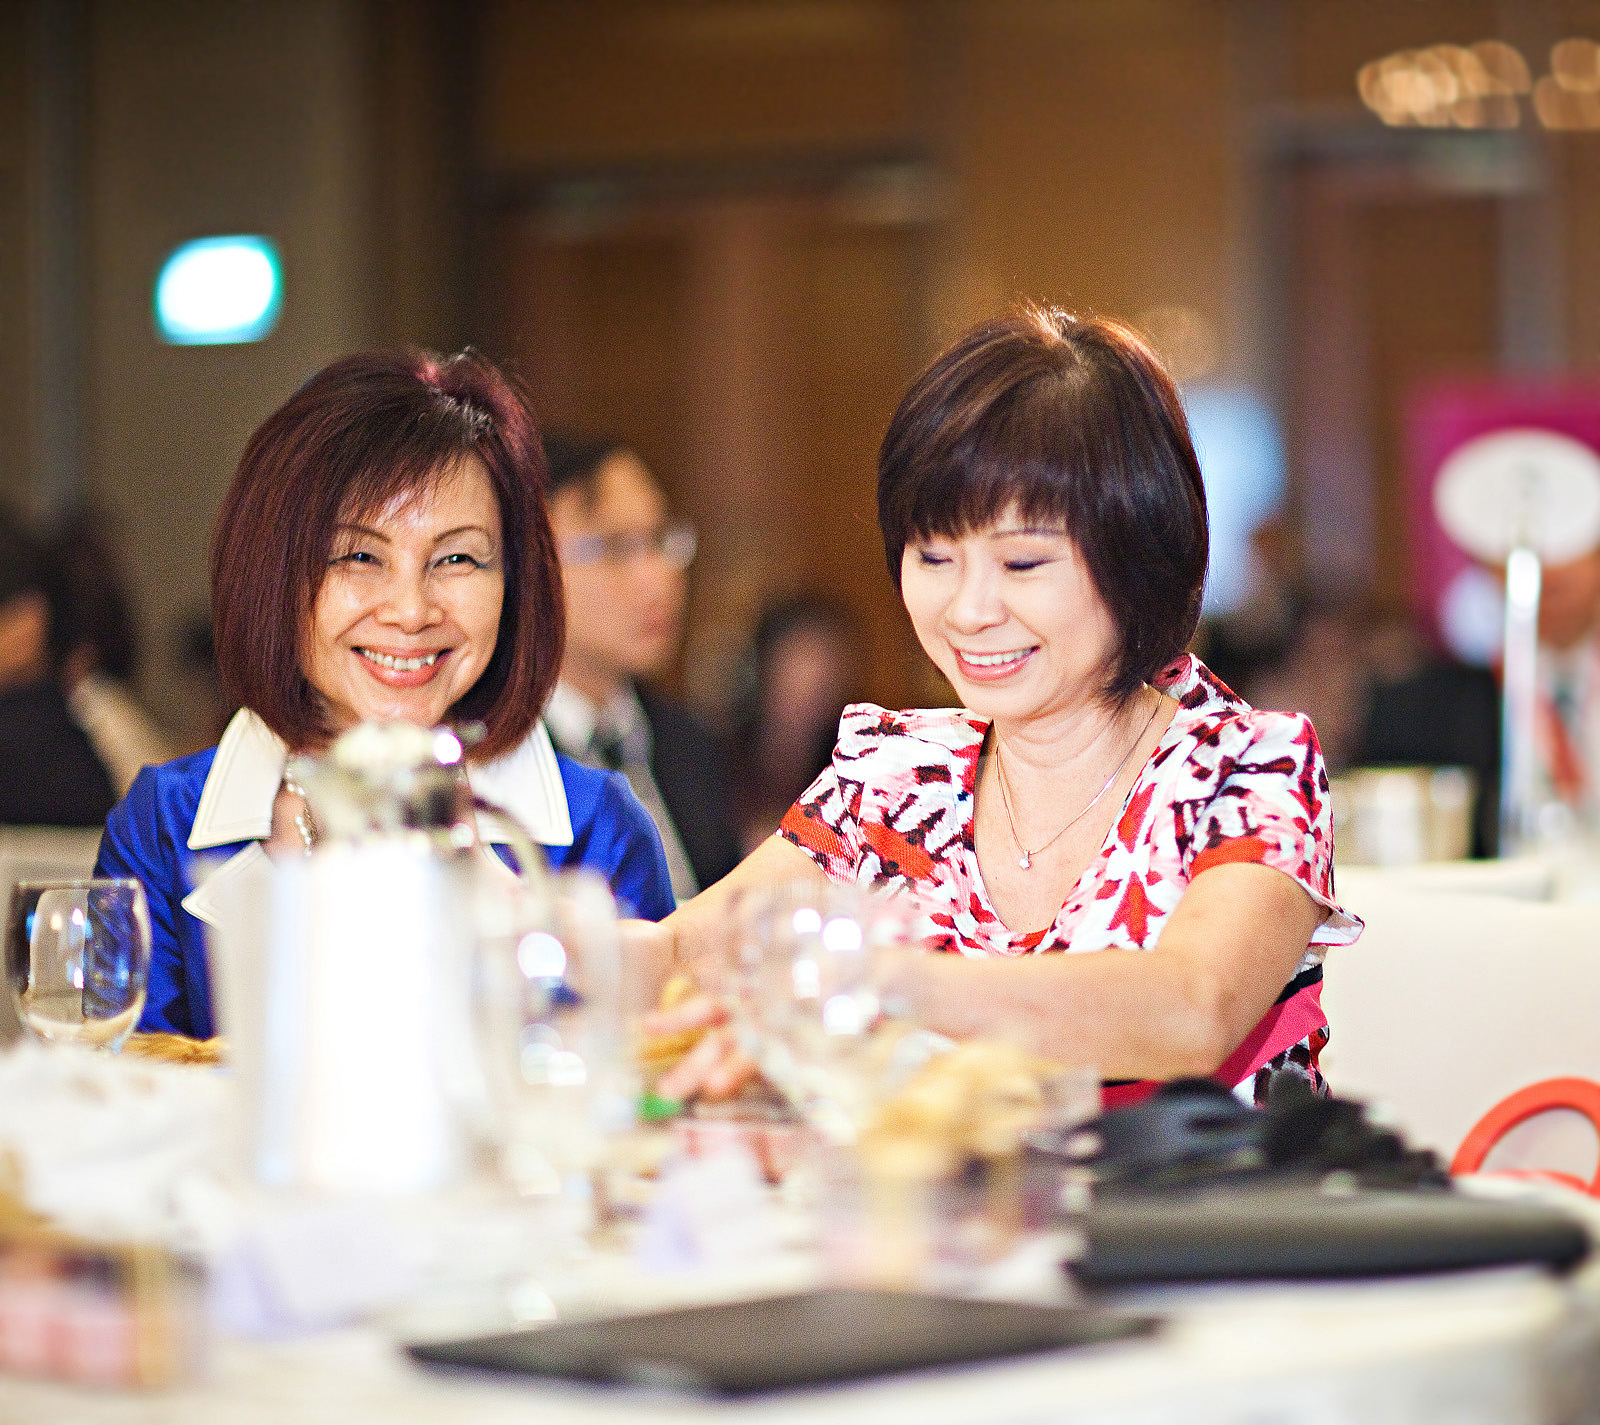 Event Photography Singapore: 360 Productivity Framework Singapore